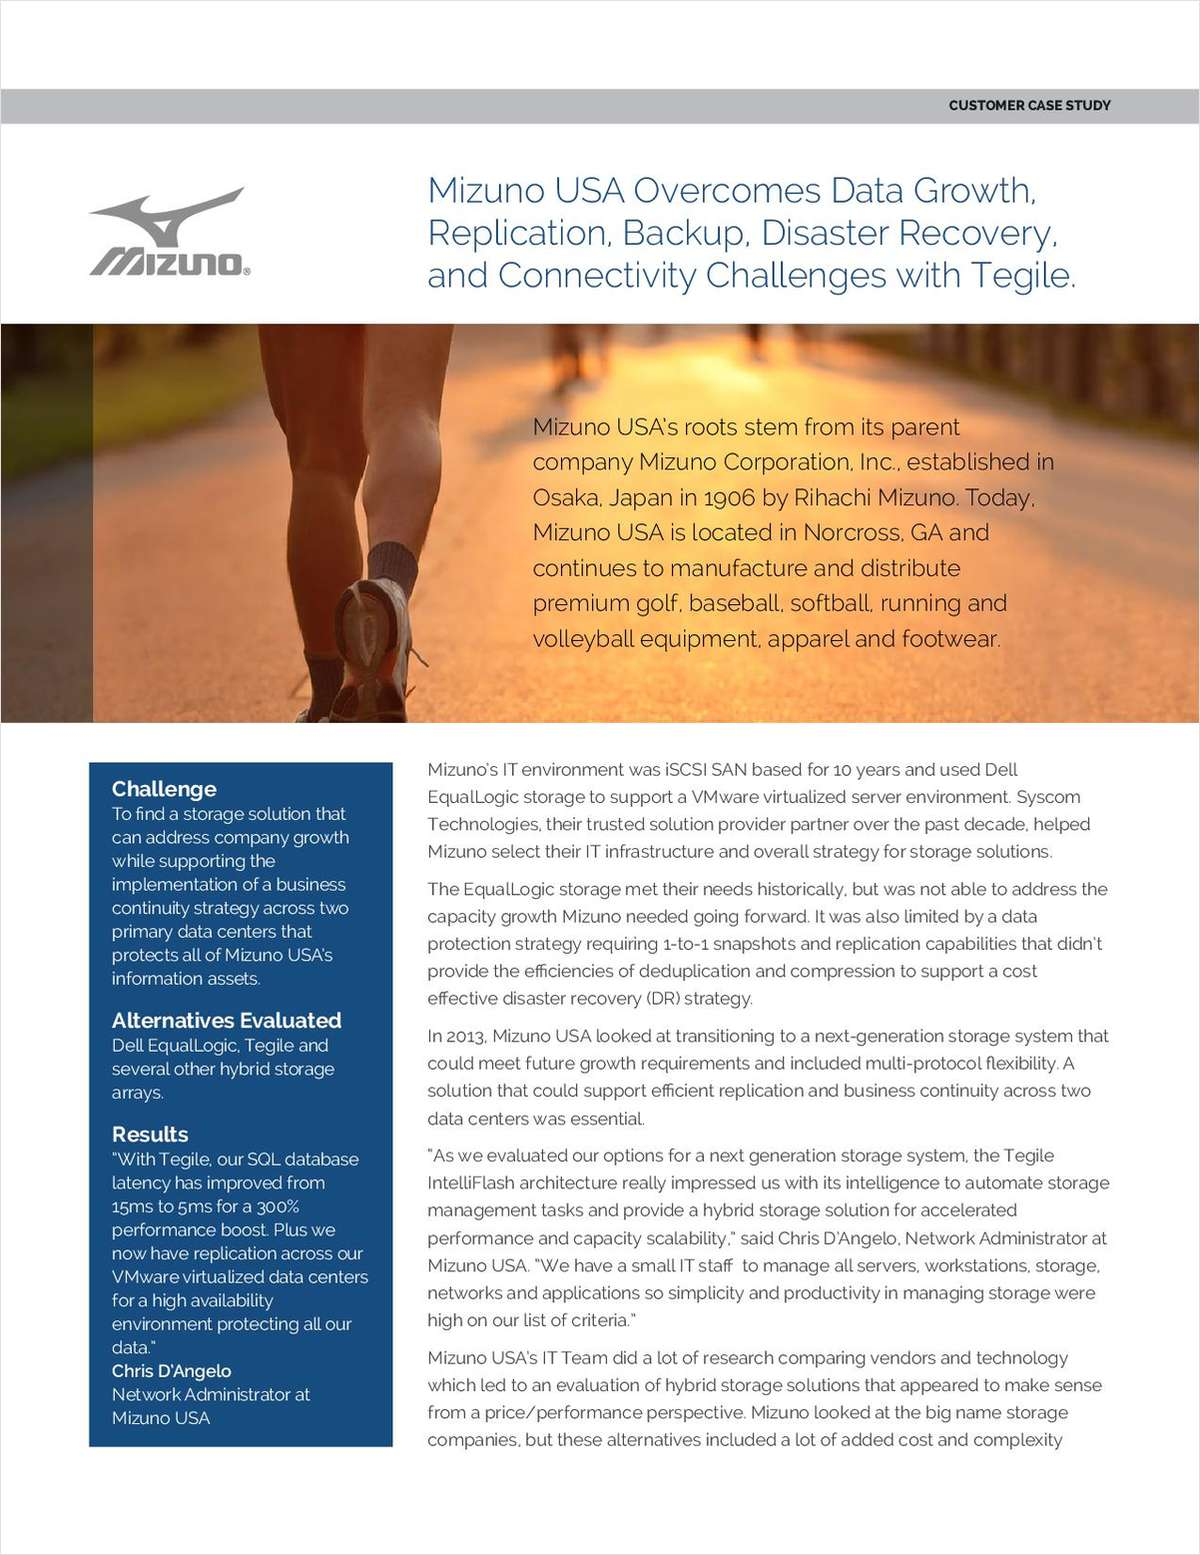 Mizuno USA Overcomes Data Growth, Replication, Backup, Disaster Recovery, and Connectivity Challenges with Tegile.